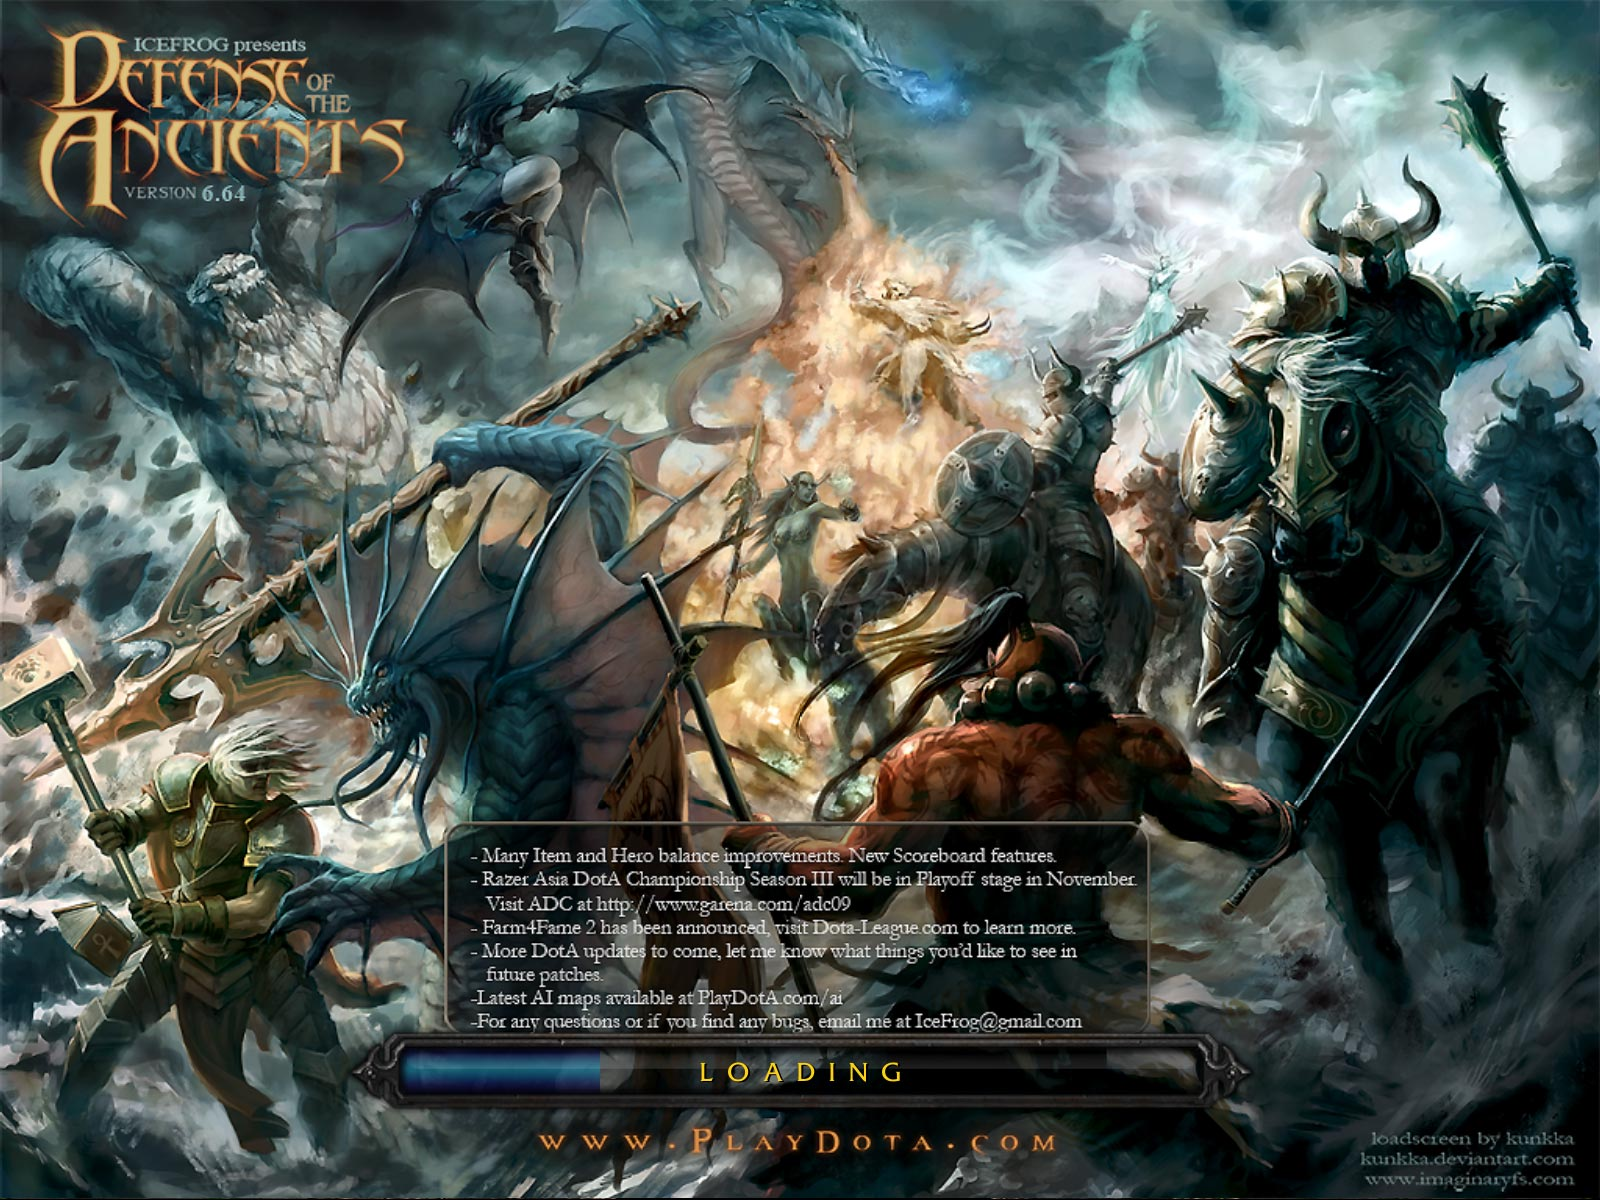 Defense of the Ancients 6.64 Wallpaper Image Wc3 Load